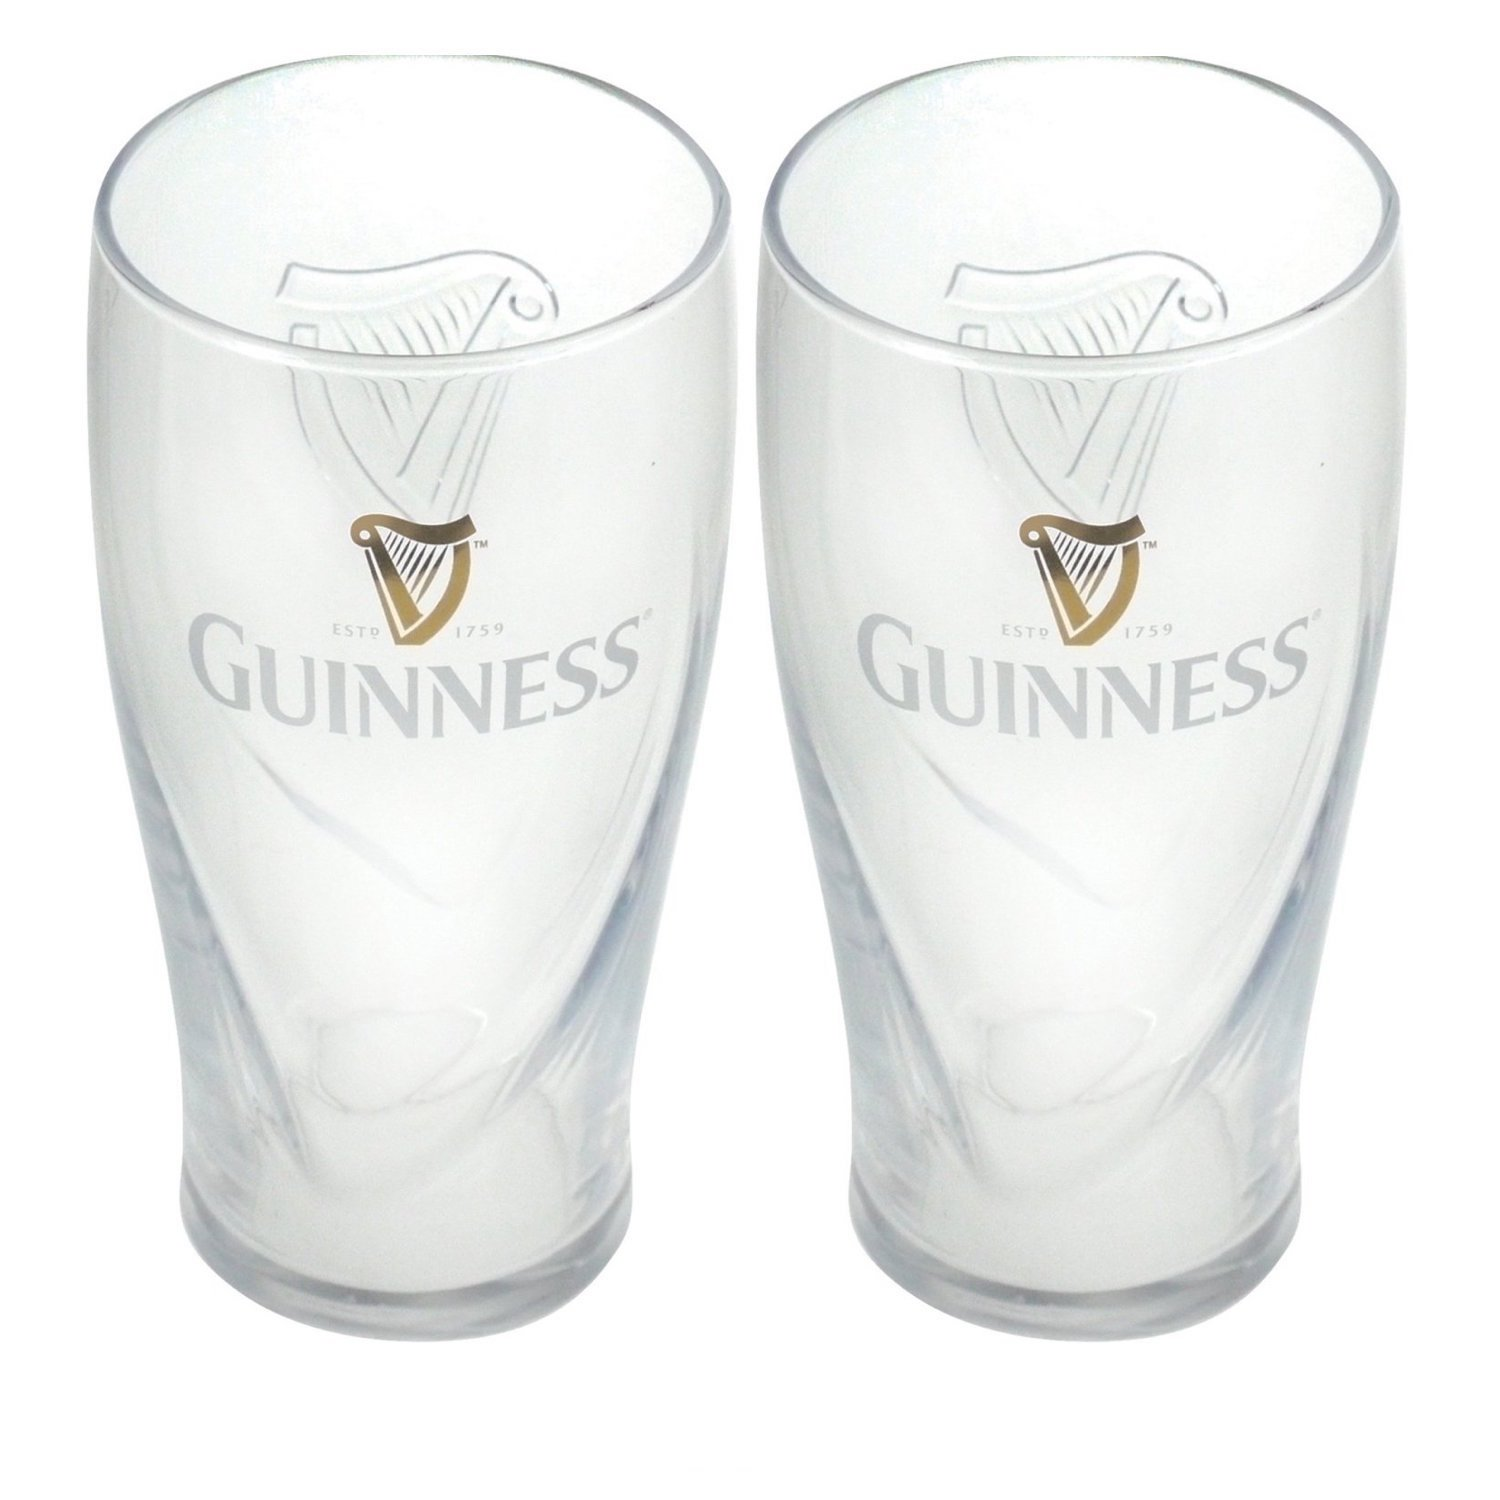 Guinness Gravity Pint Glass (2 Pack) 02643